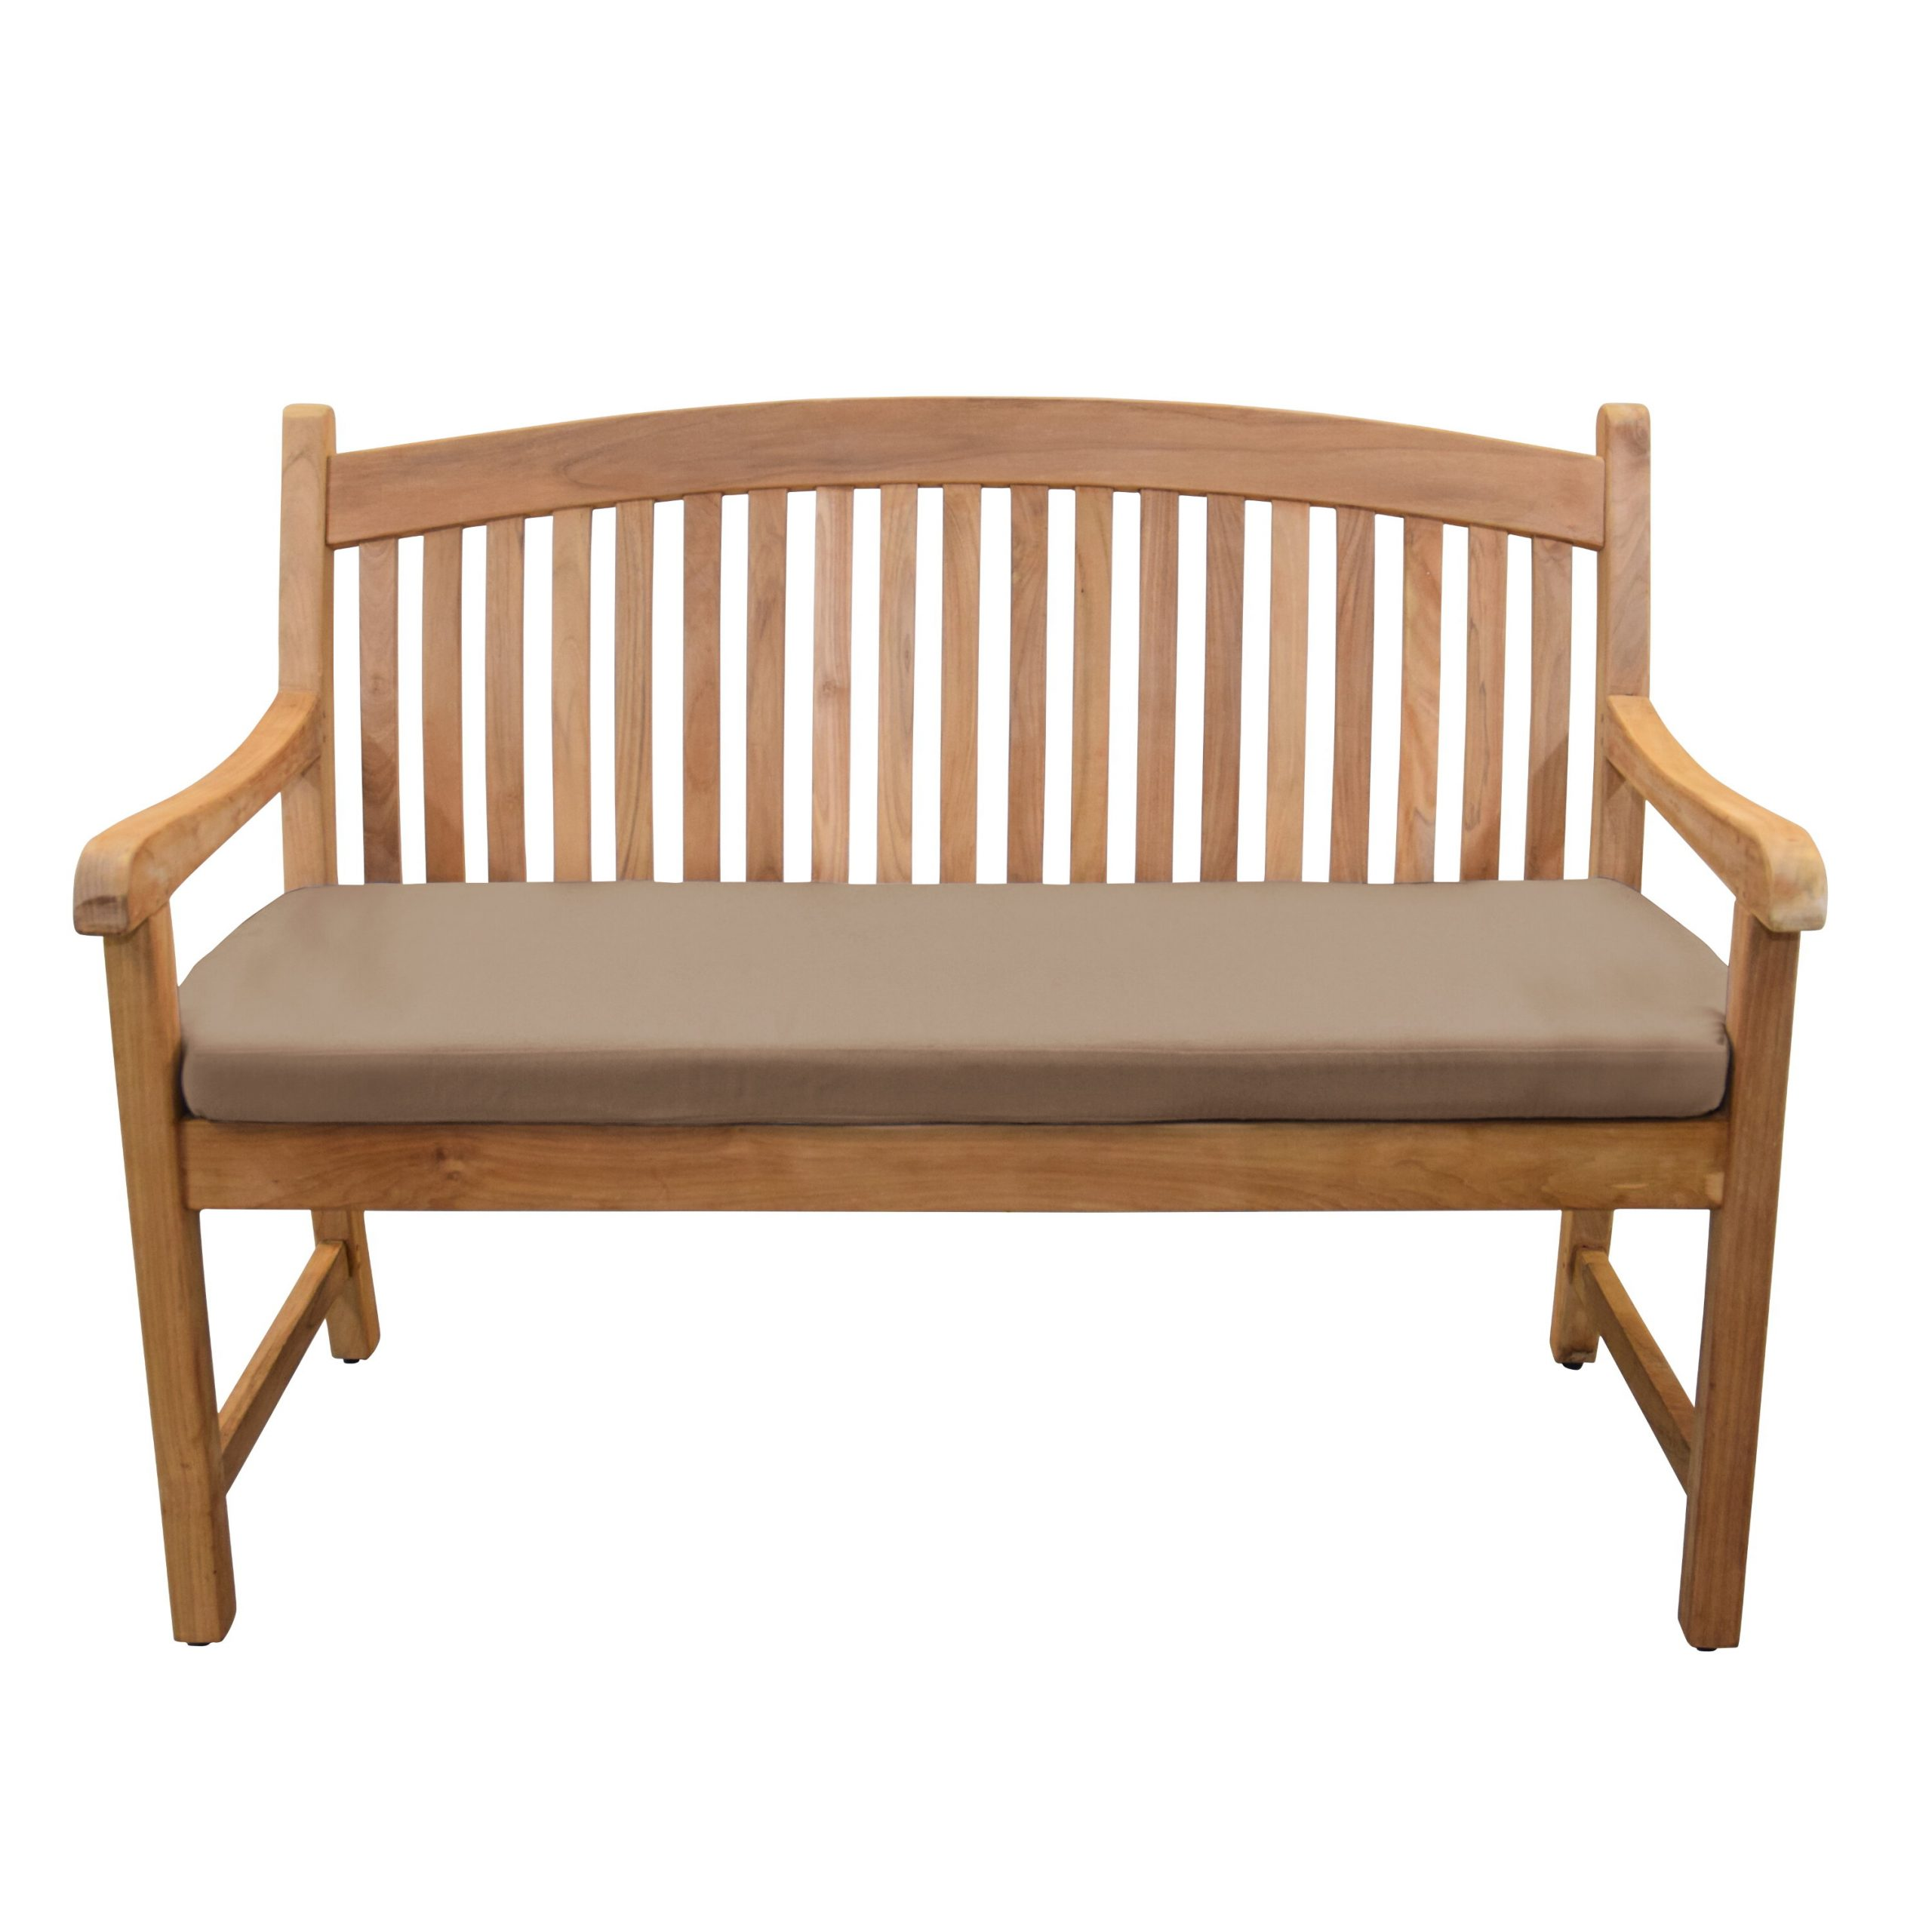 Pulver Teak Garden Bench Pertaining To Well Liked Wallie Teak Garden Benches (View 5 of 30)